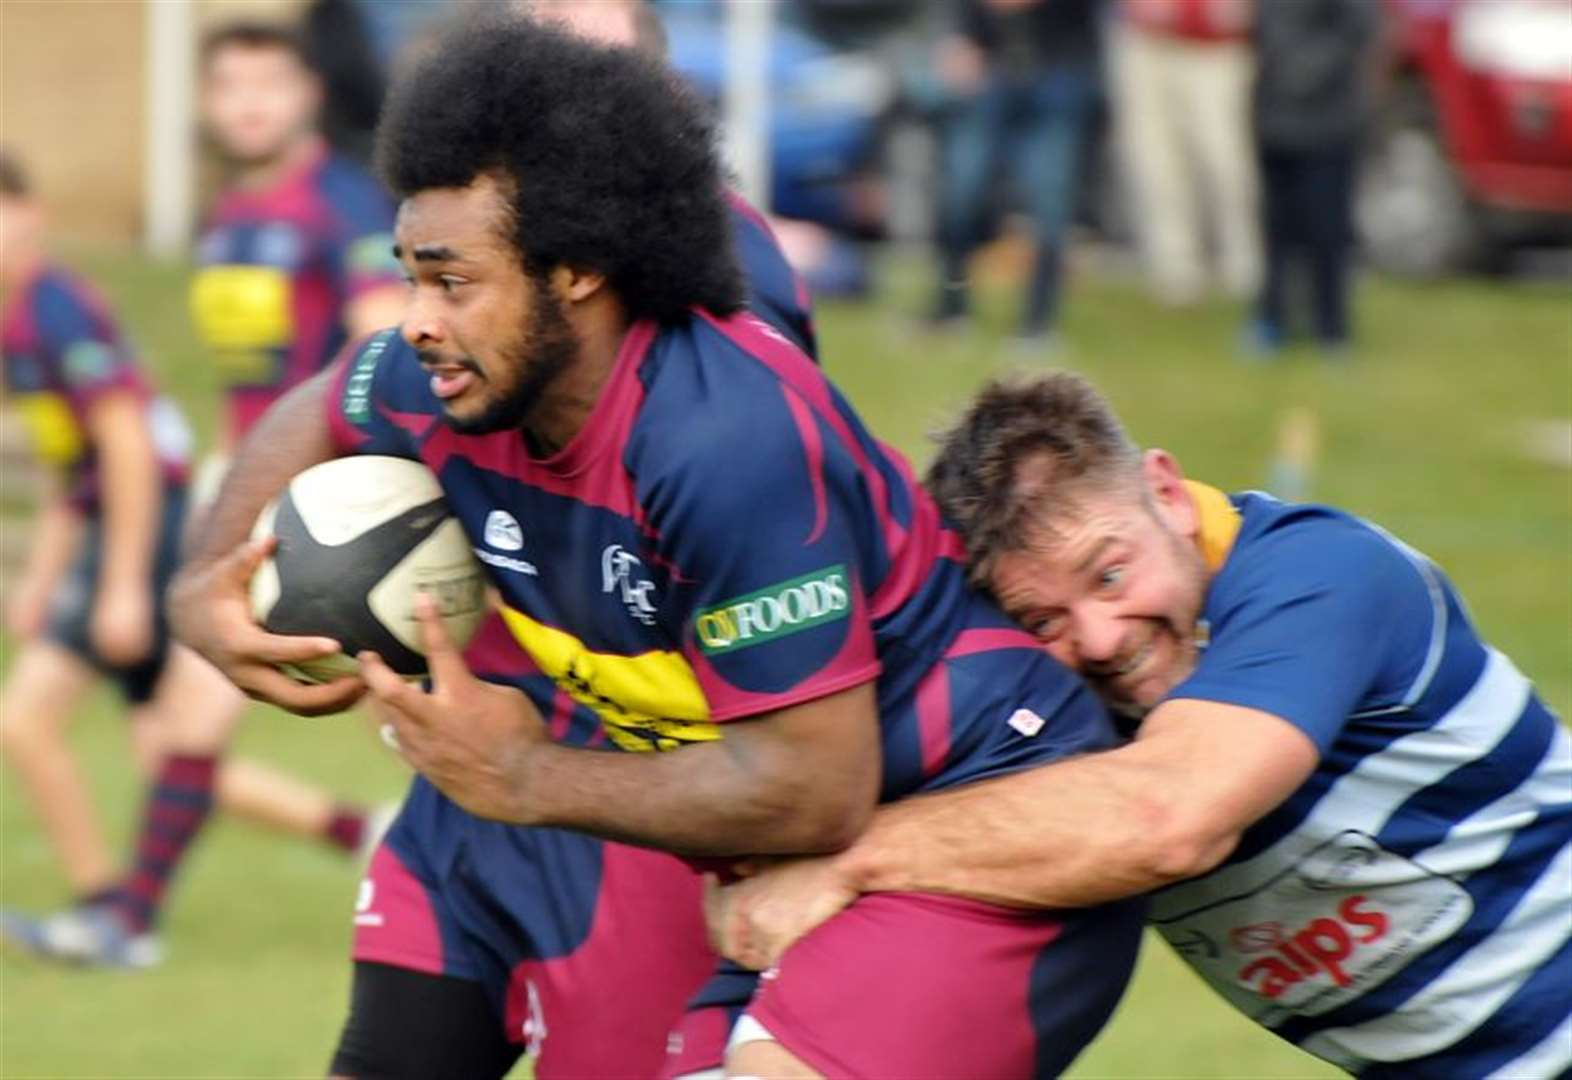 RUGBY UNION: Heroic Town topple leaders with brilliant win